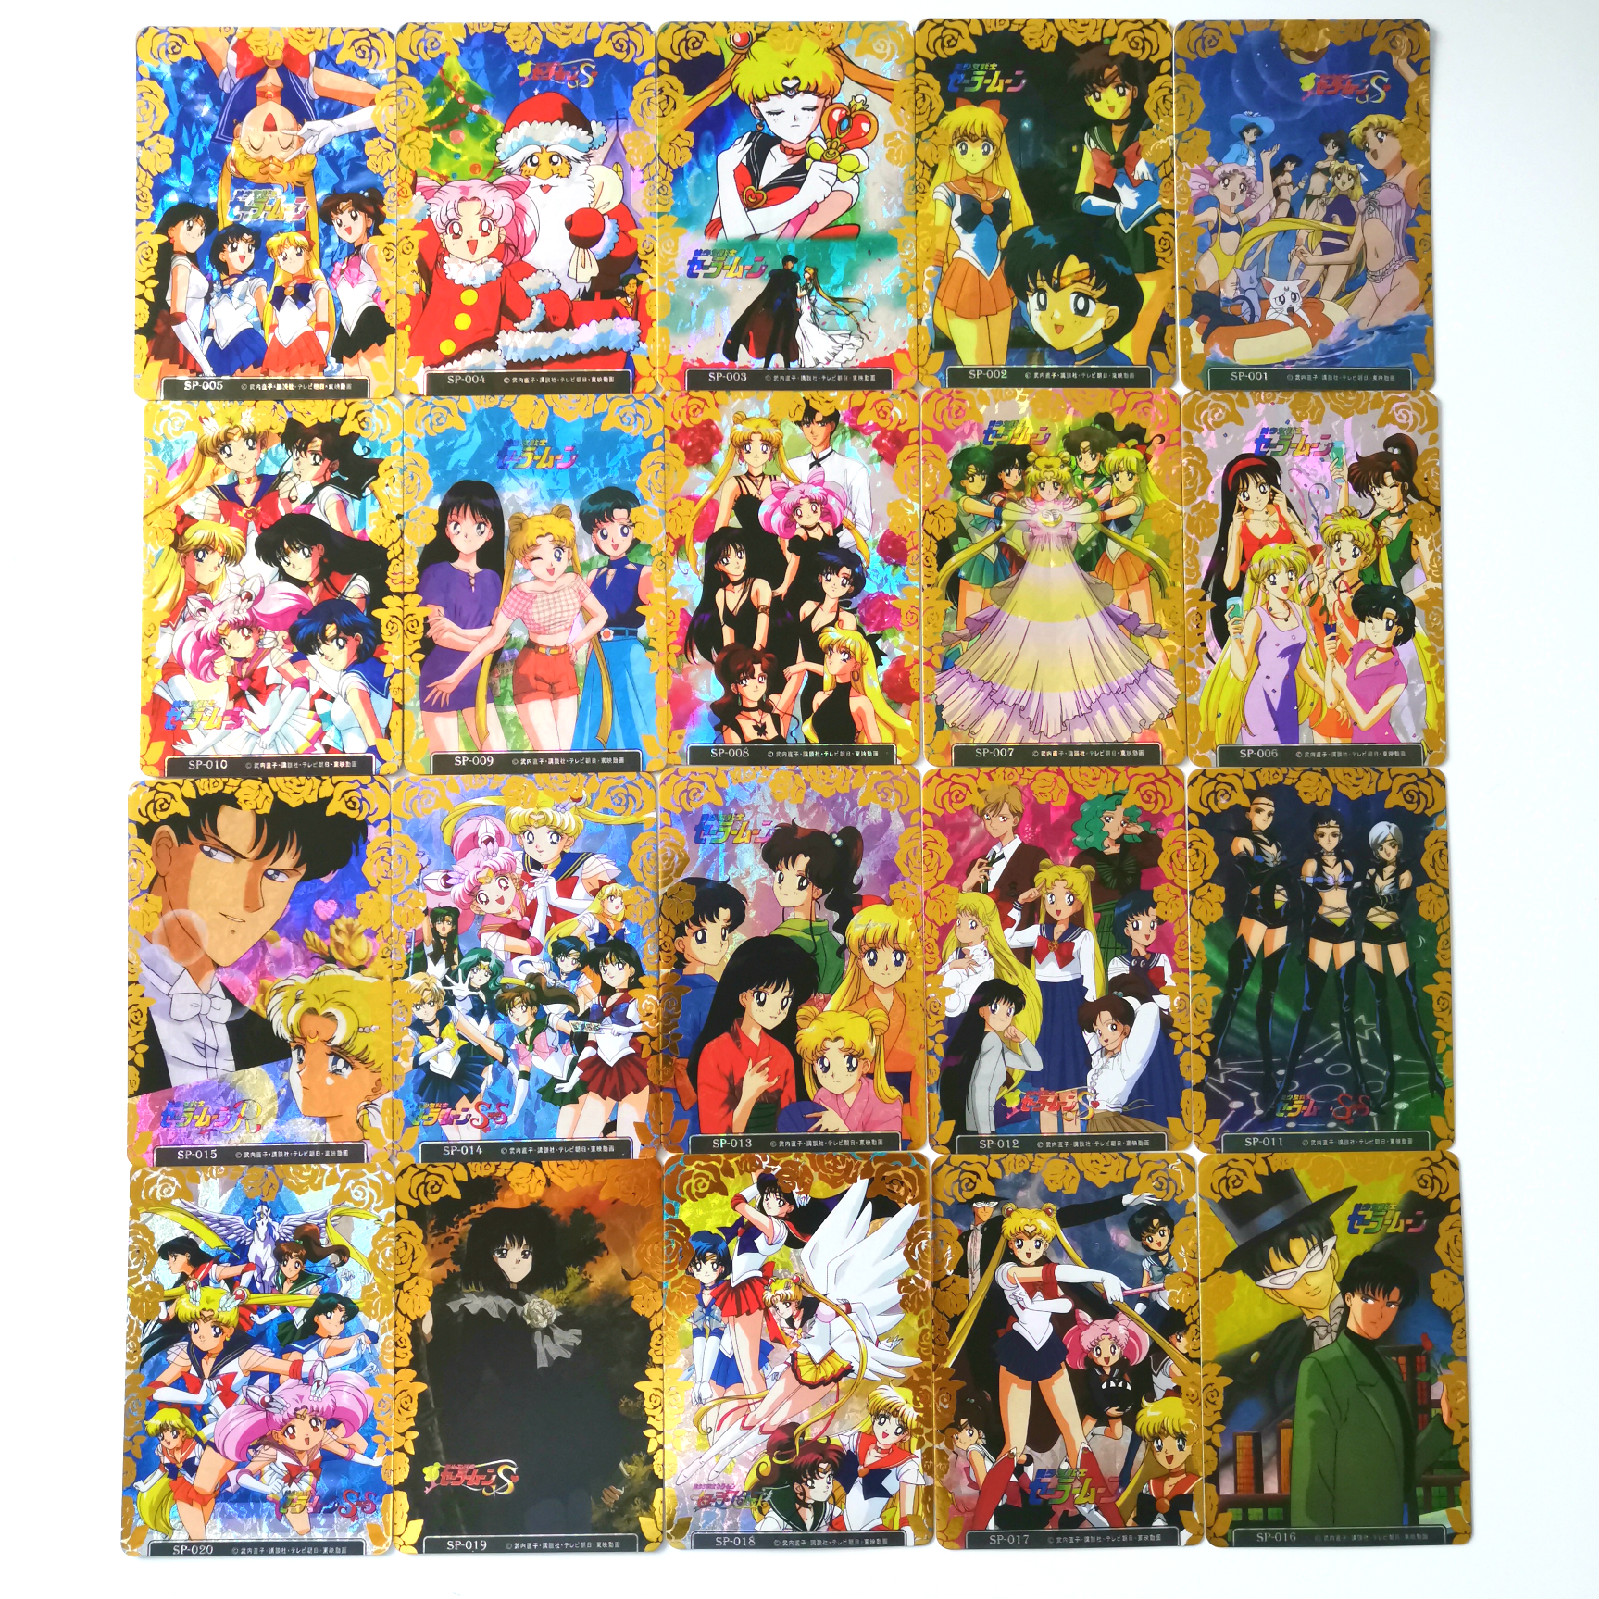 20pcs Sailor Moon Third Pop-up Bronzing Border Toys Hobbies Hobby Collectibles Game Collection Anime Cards